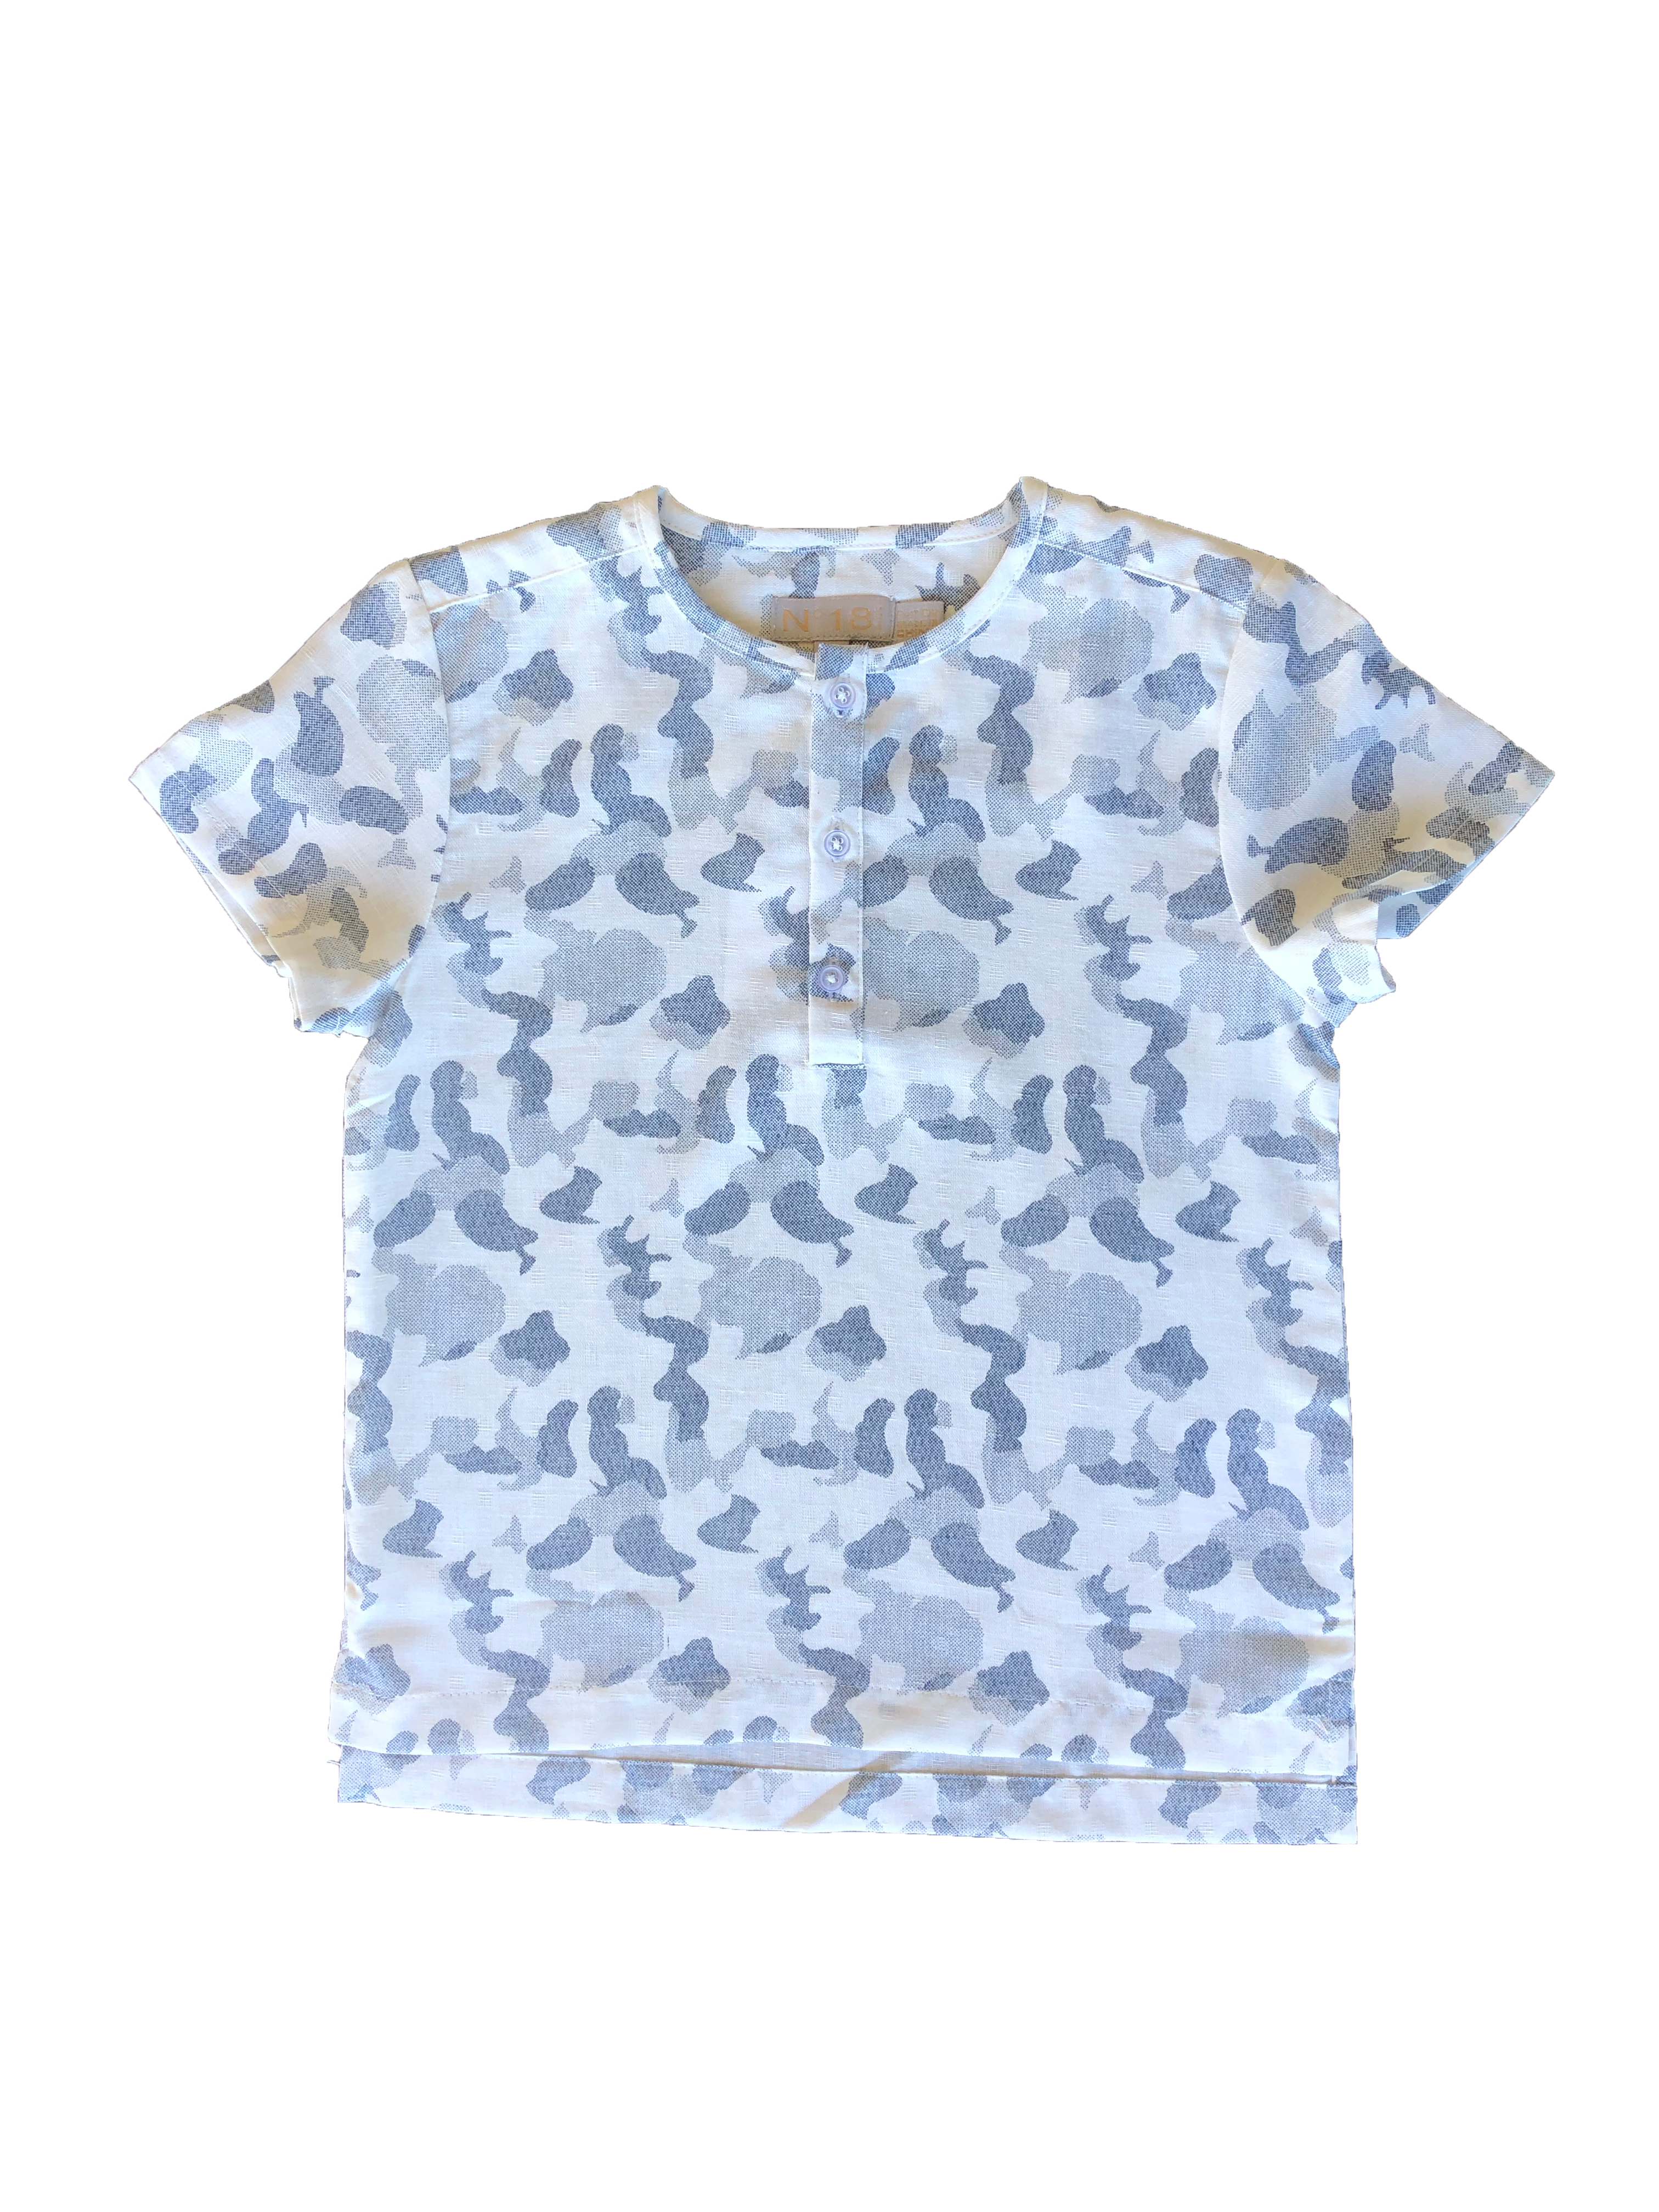 N° 18 White Navy/Gray Camo Print Shirt